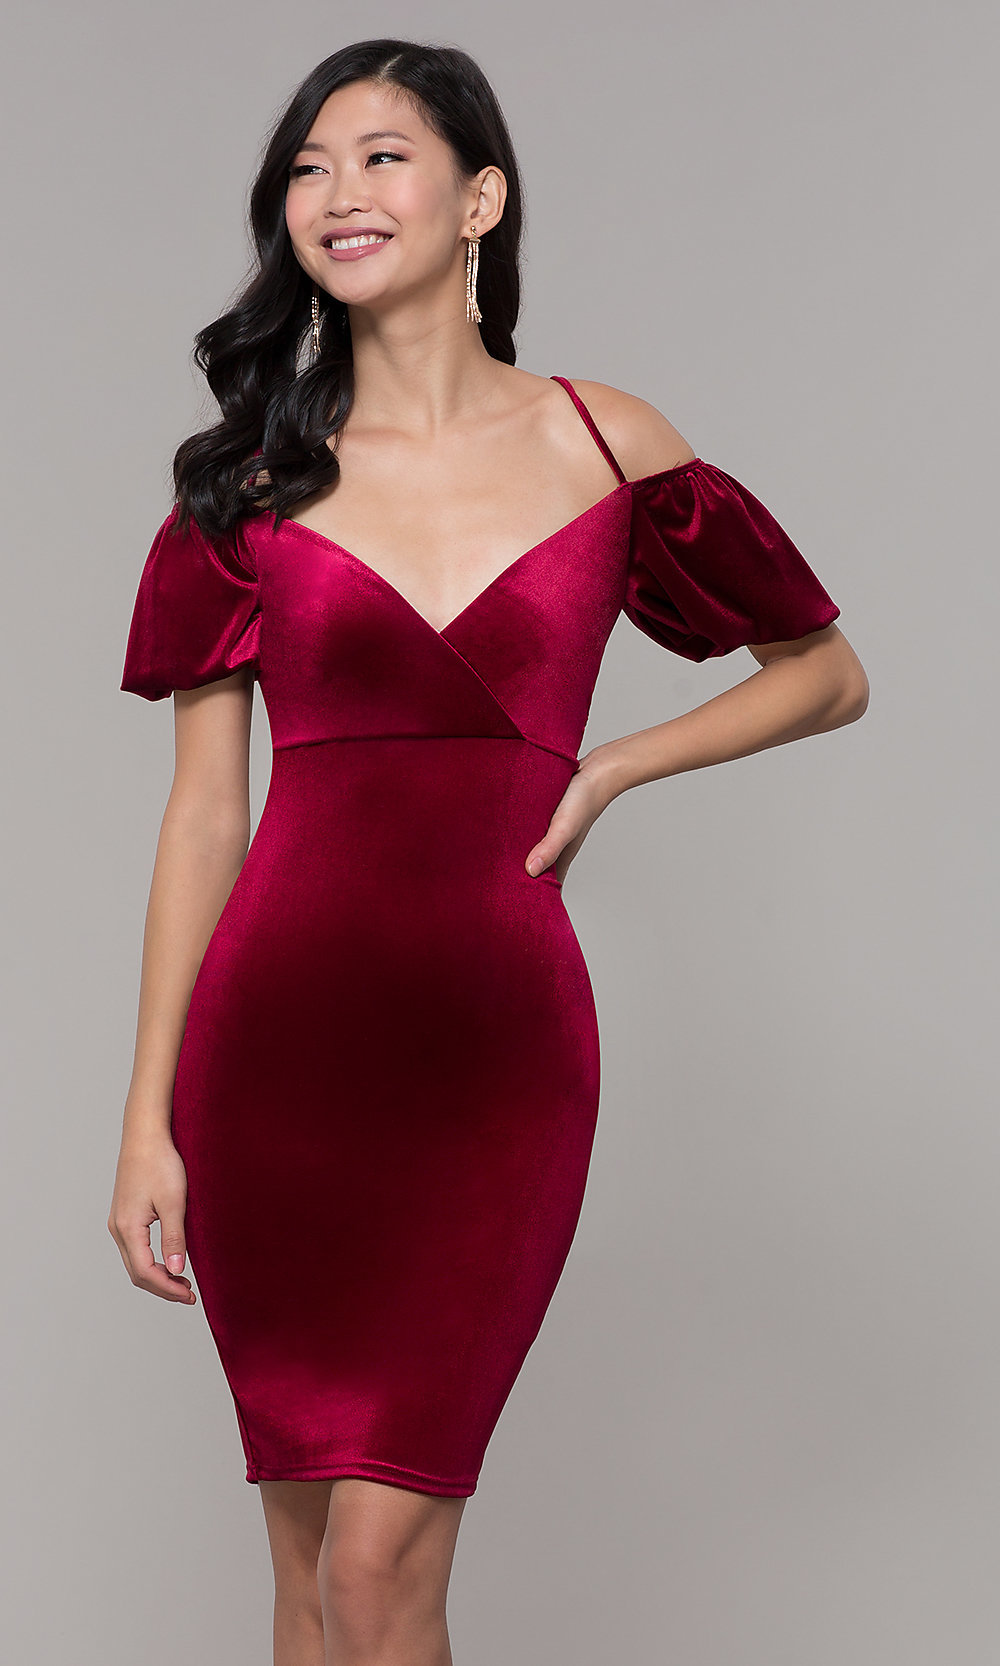 8a81def85108c Tap to expand · Image of knee-length velvet cold-shoulder party dress.